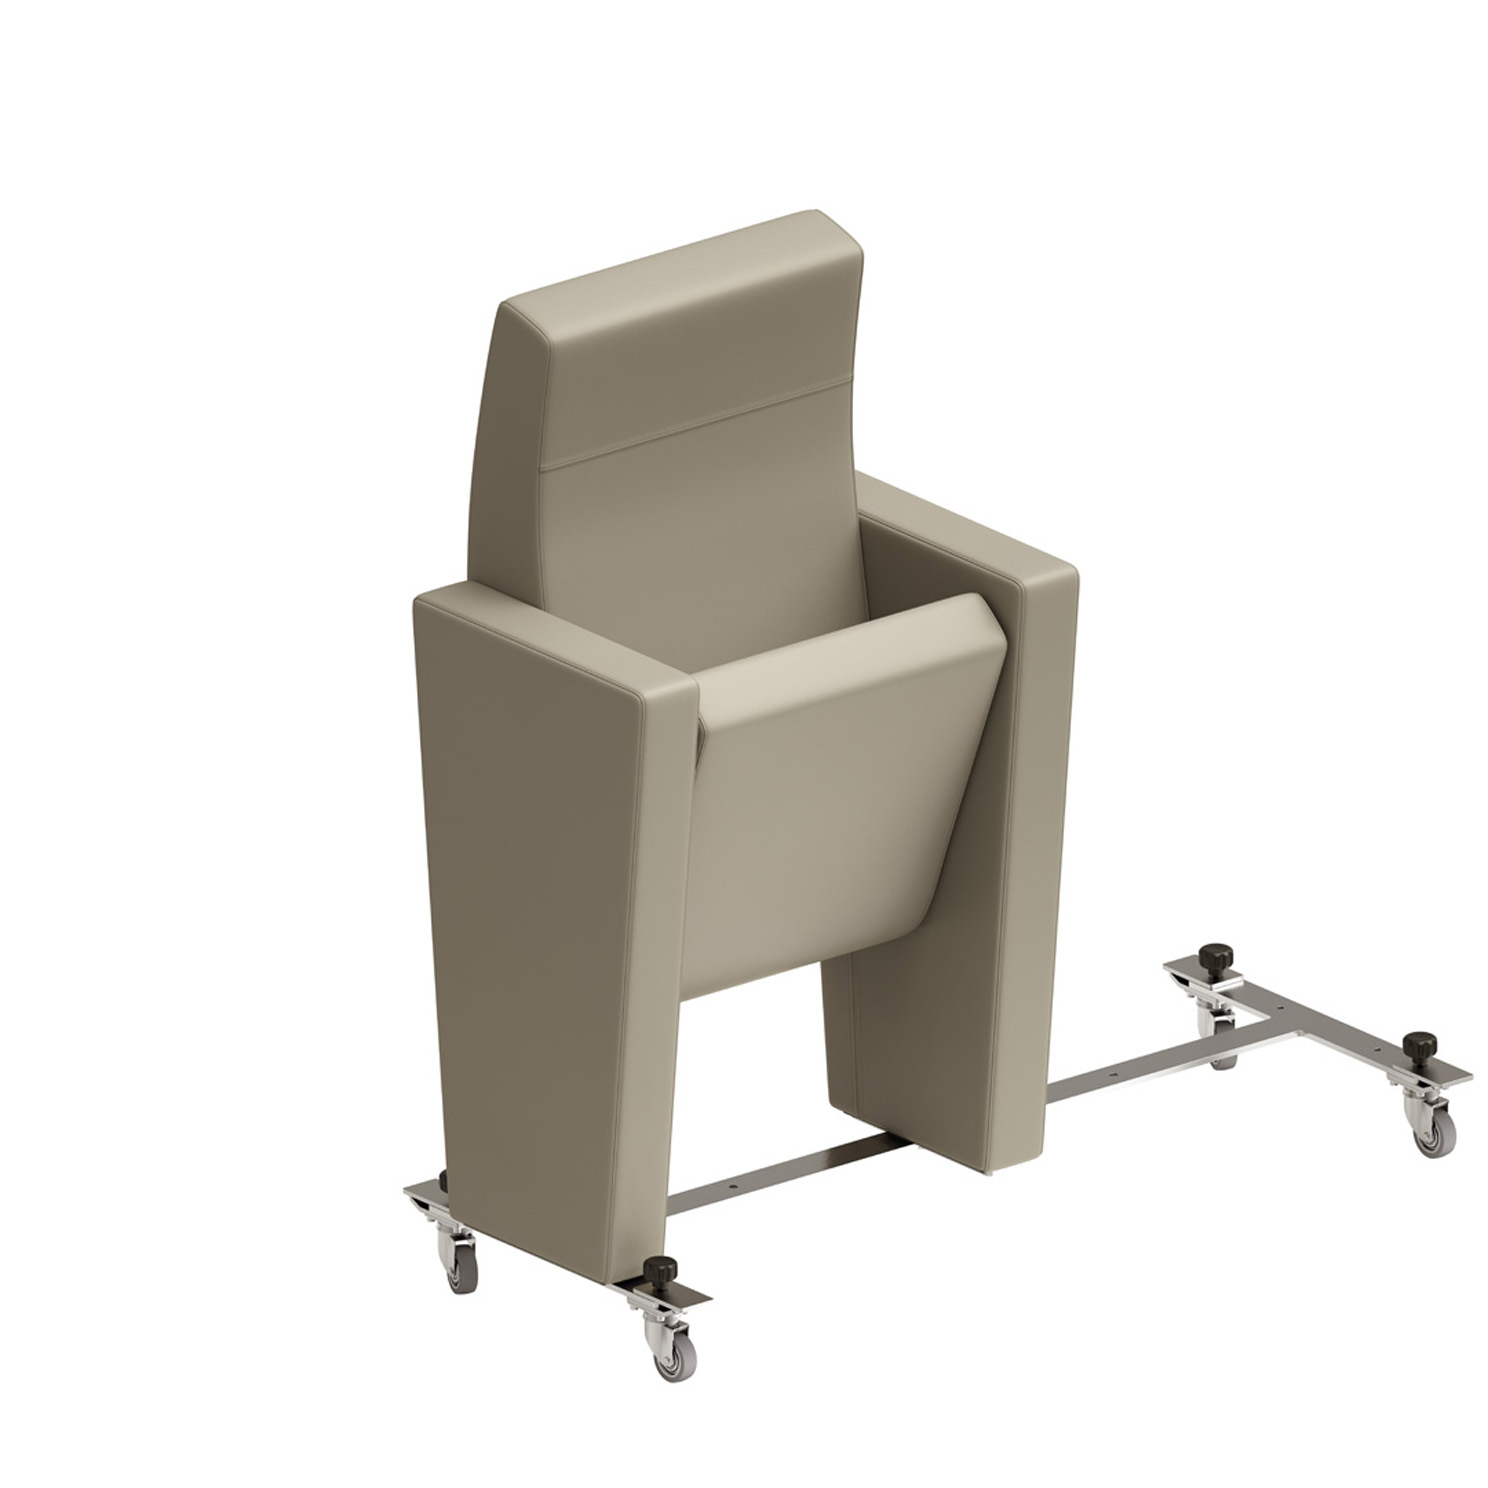 LAMM C900 Chair | Woodwood Group